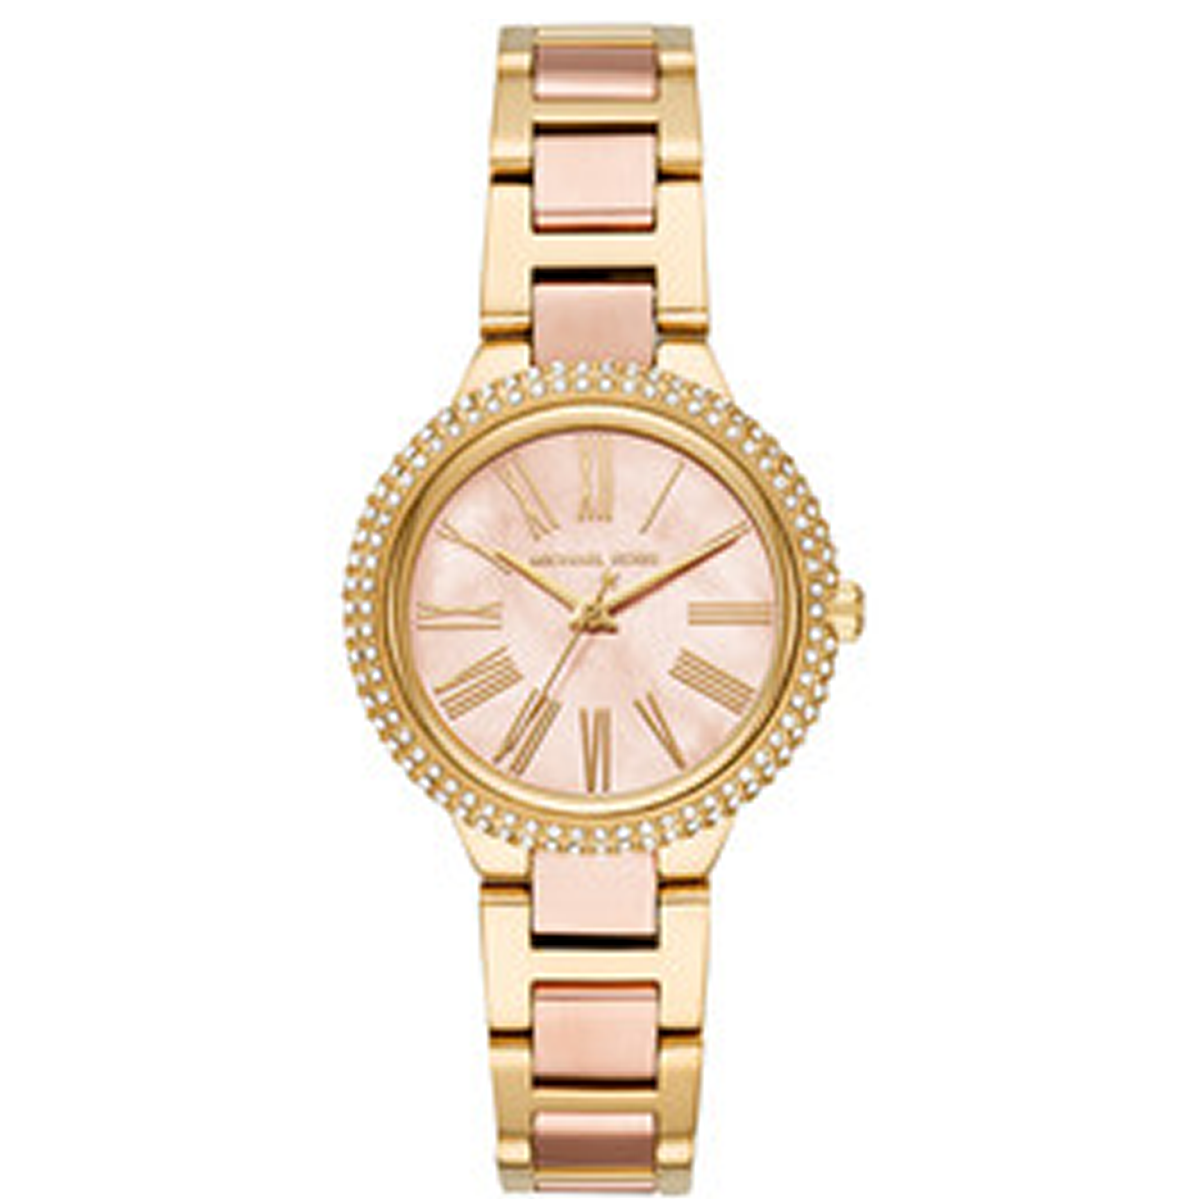 Michael kors watches macy 39 s for Watches michael kors